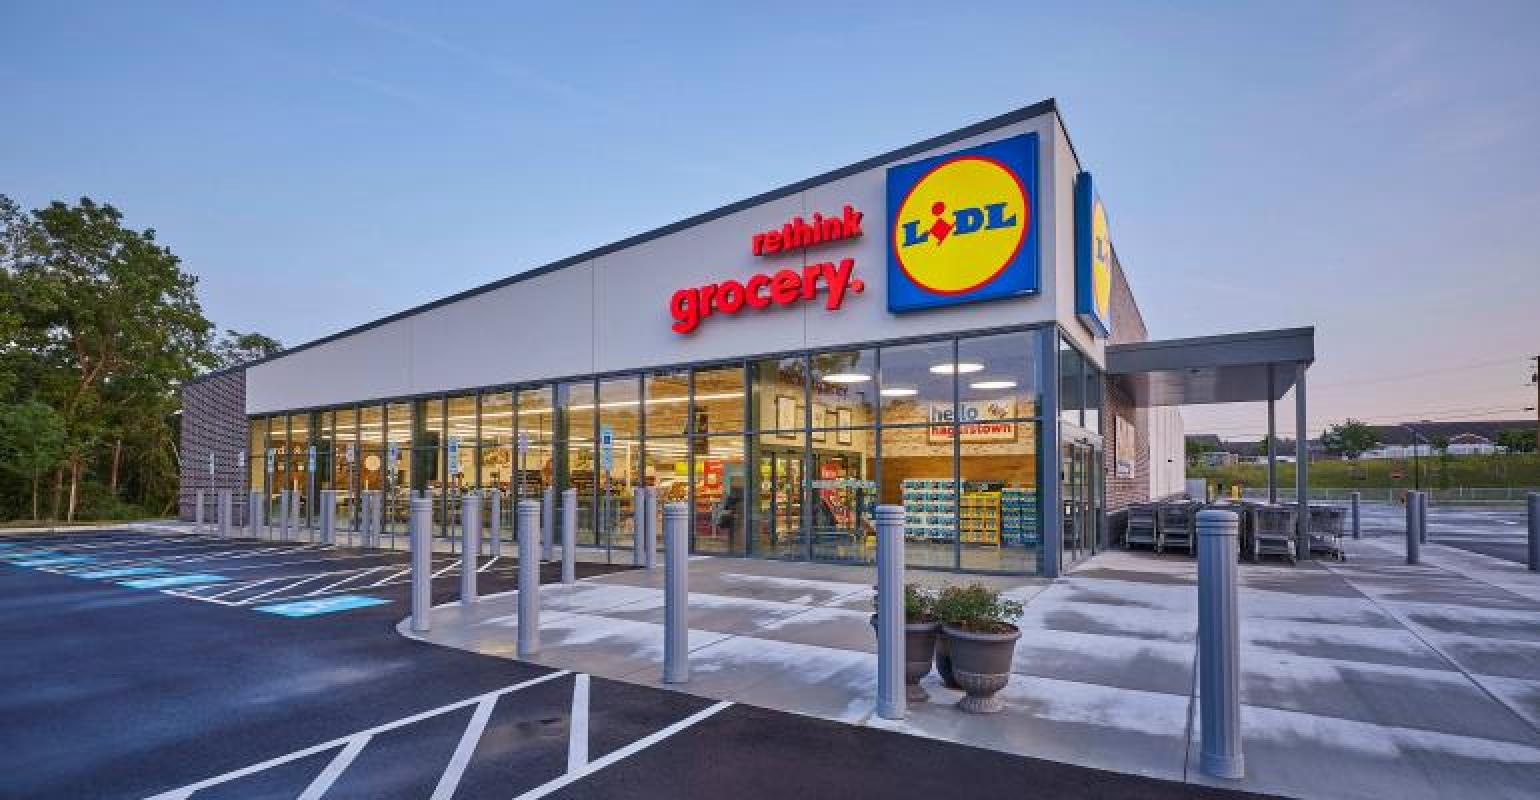 Lidl readies second wave of Long Island stores | Supermarket